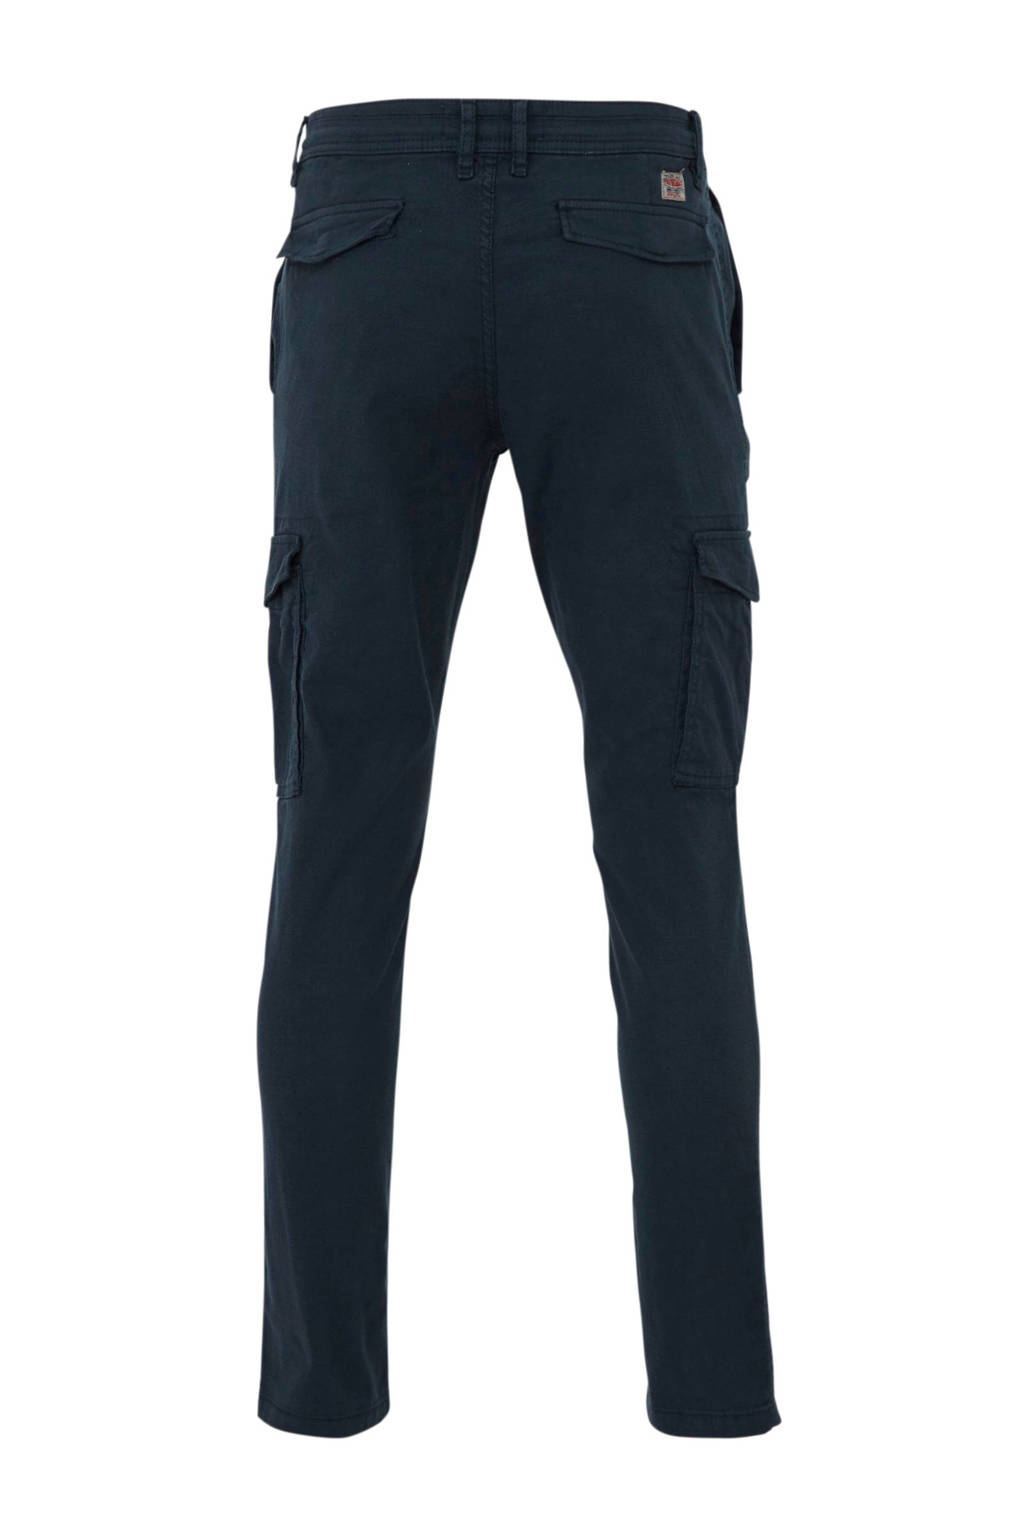 C&A Angelo Litrico tapered fit cargo broek donkerblauw, Donkerblauw